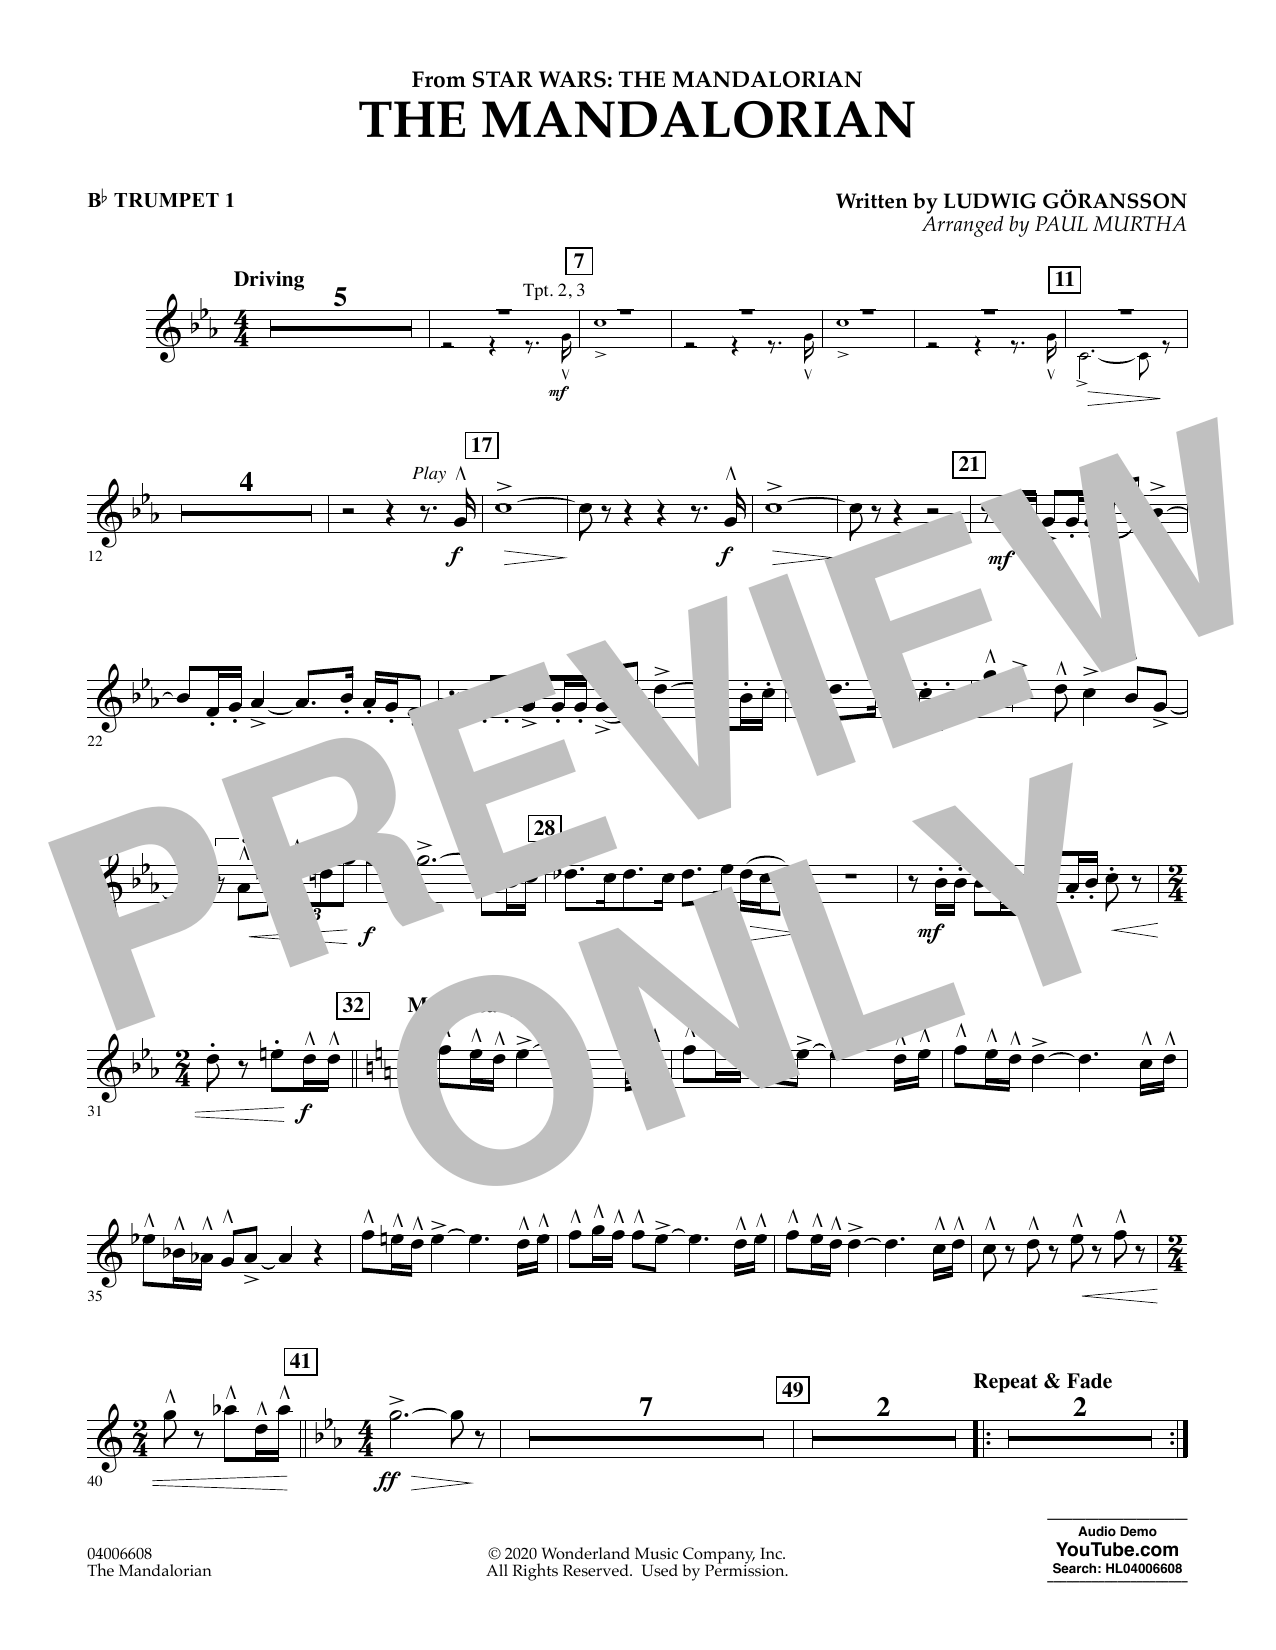 Ludwig Goransson The Mandalorian (from Star Wars: The Mandalorian) (arr. Paul Murtha) - Bb Trumpet 1 sheet music notes and chords. Download Printable PDF.